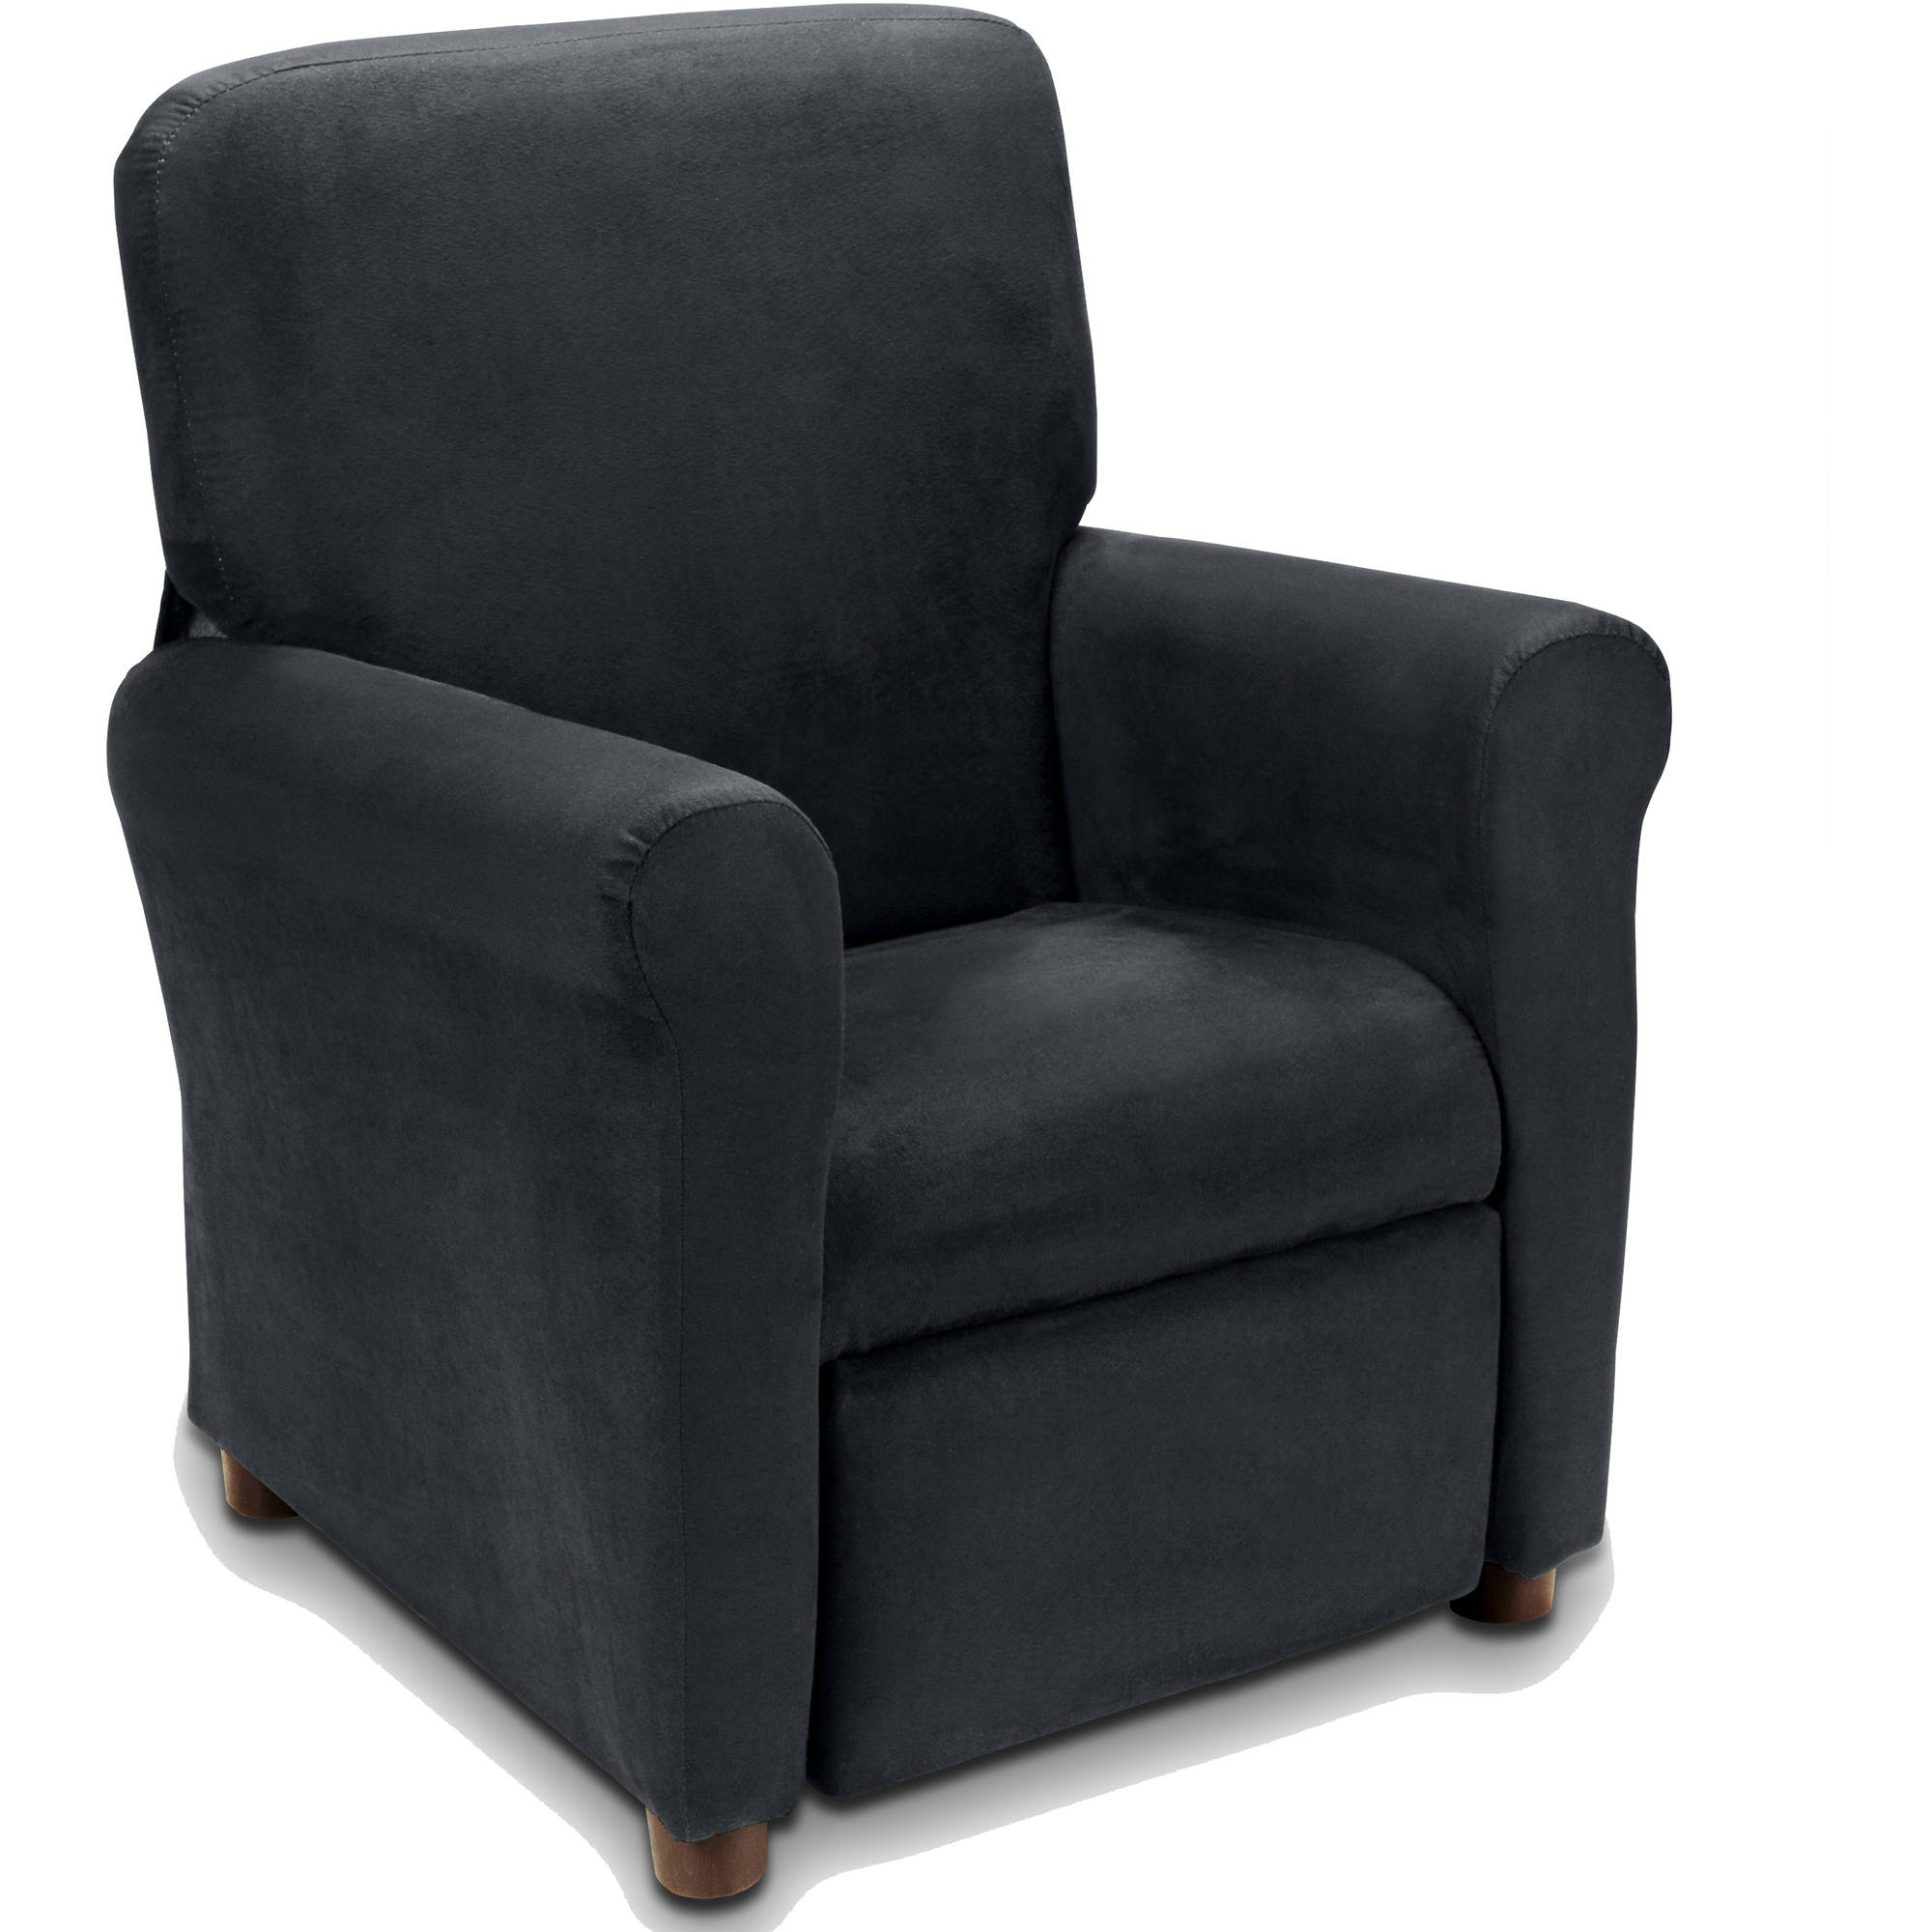 Flash Furniture Kidsu0027 Recliner with Cup Holder Black Leather - Walmart.com  sc 1 st  Walmart : leather chairs recliner - islam-shia.org